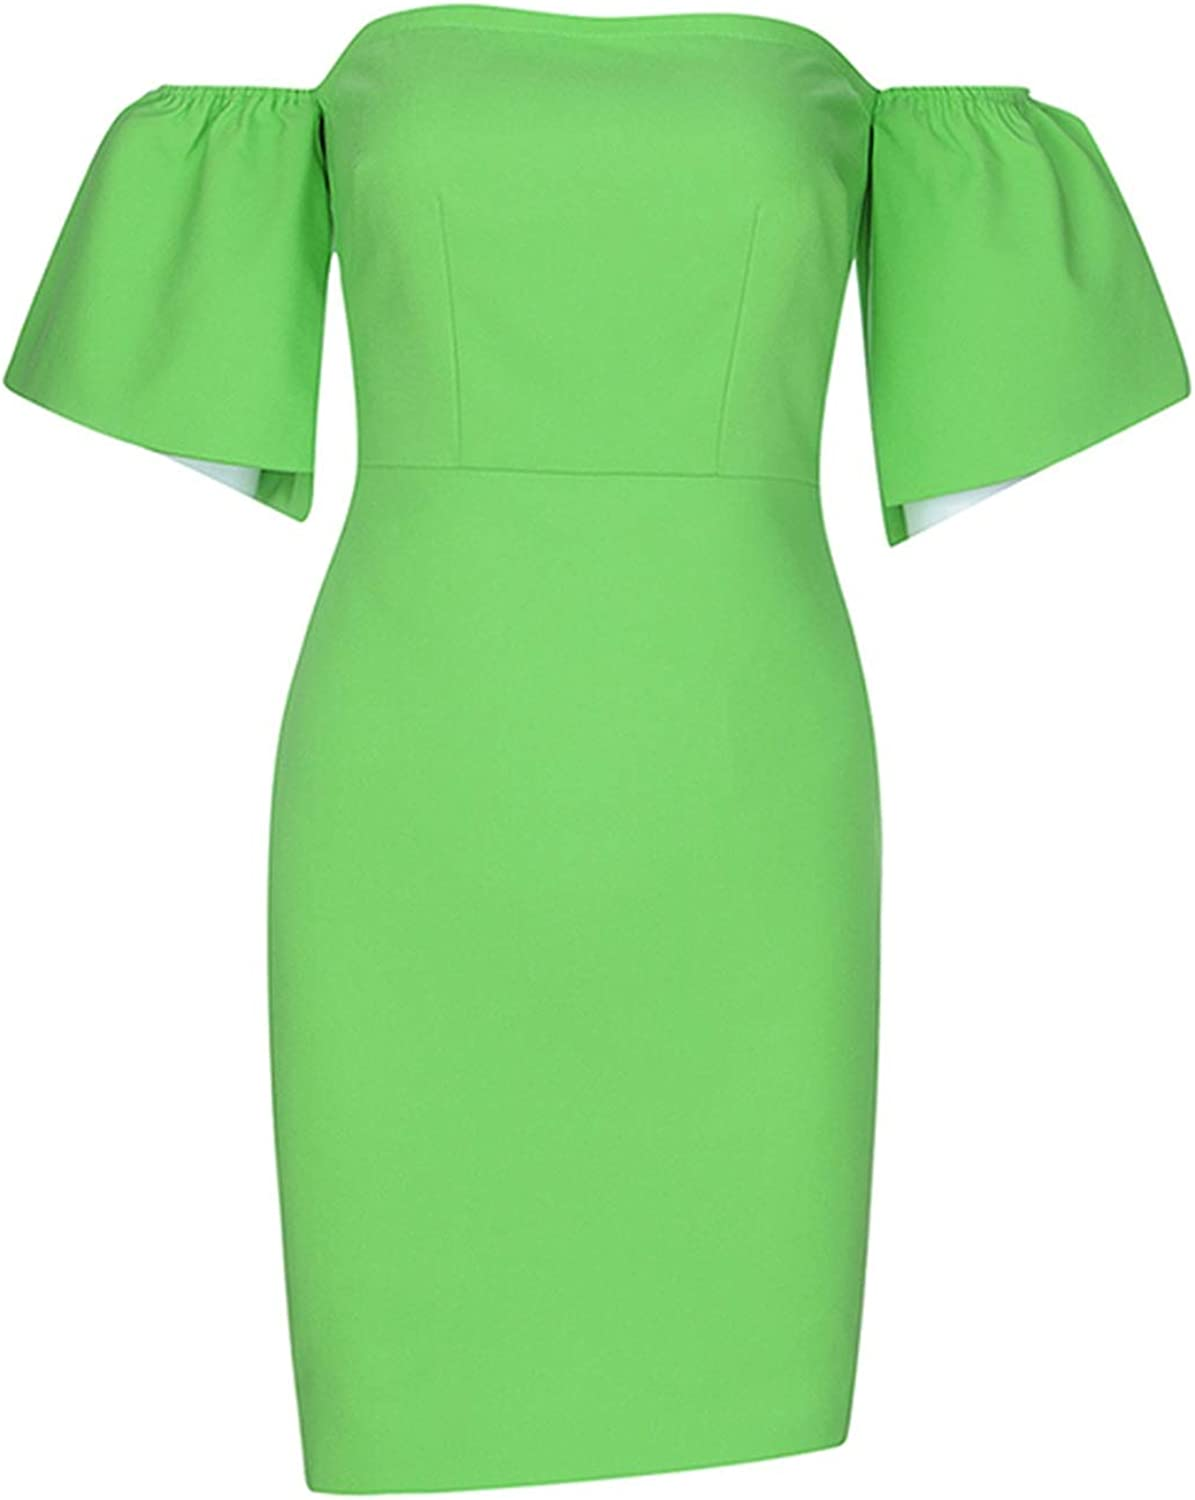 Sexy Party Dress Summer Listing OffTheShoulder Tight Dress Mini Club